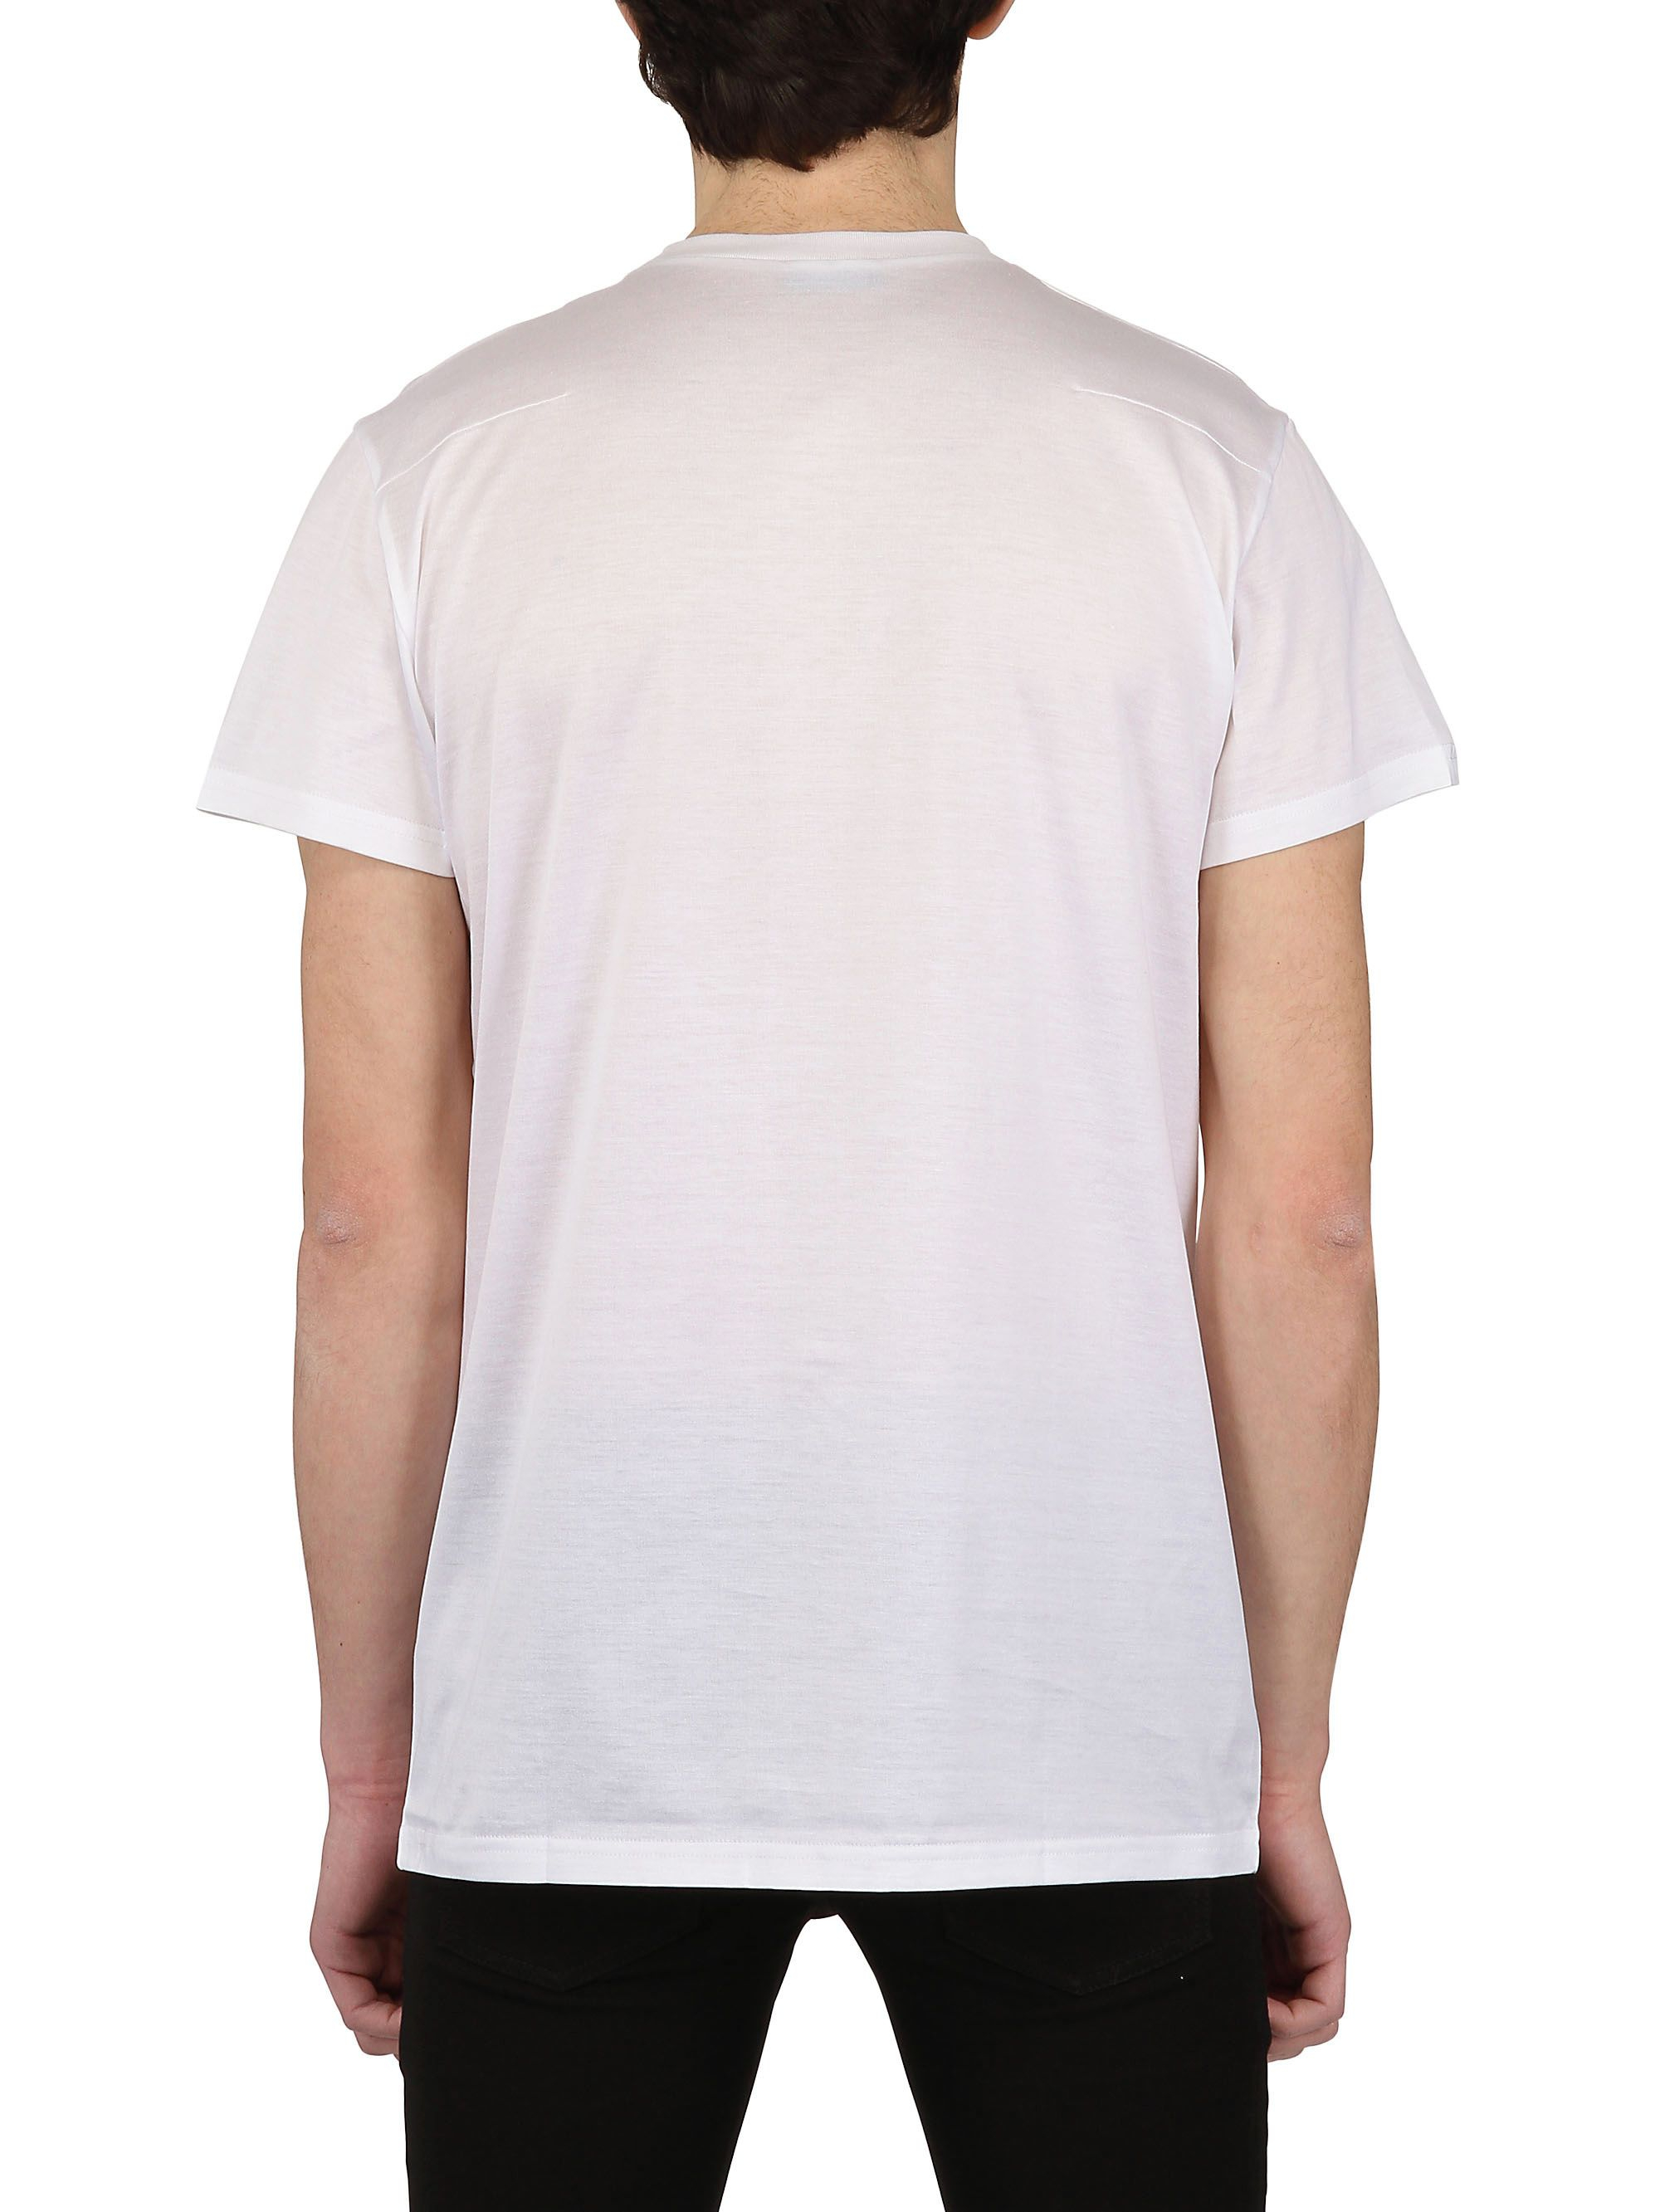 dior homme bee embroidered jersey t shirt in white for men lyst. Black Bedroom Furniture Sets. Home Design Ideas